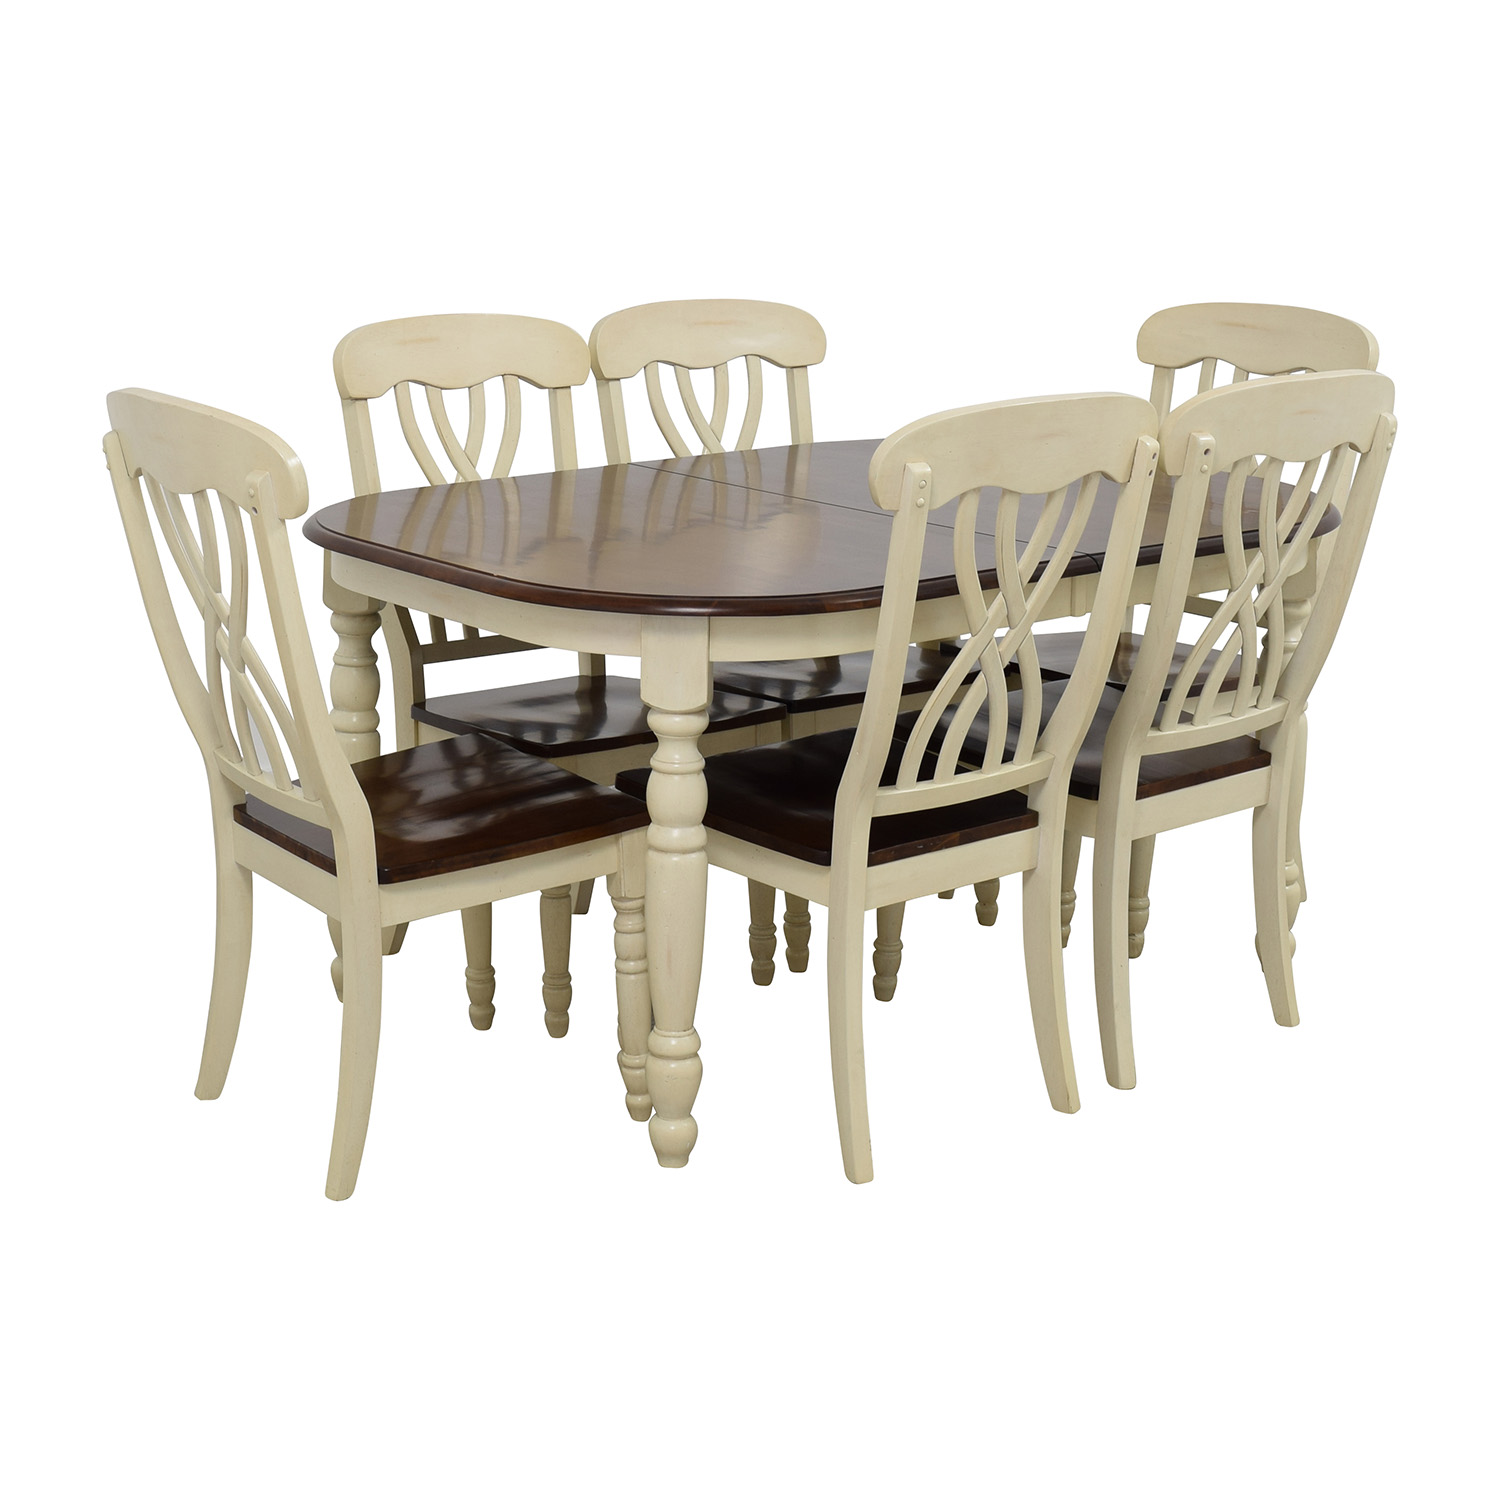 Off extendable wood dining table with chairs tables